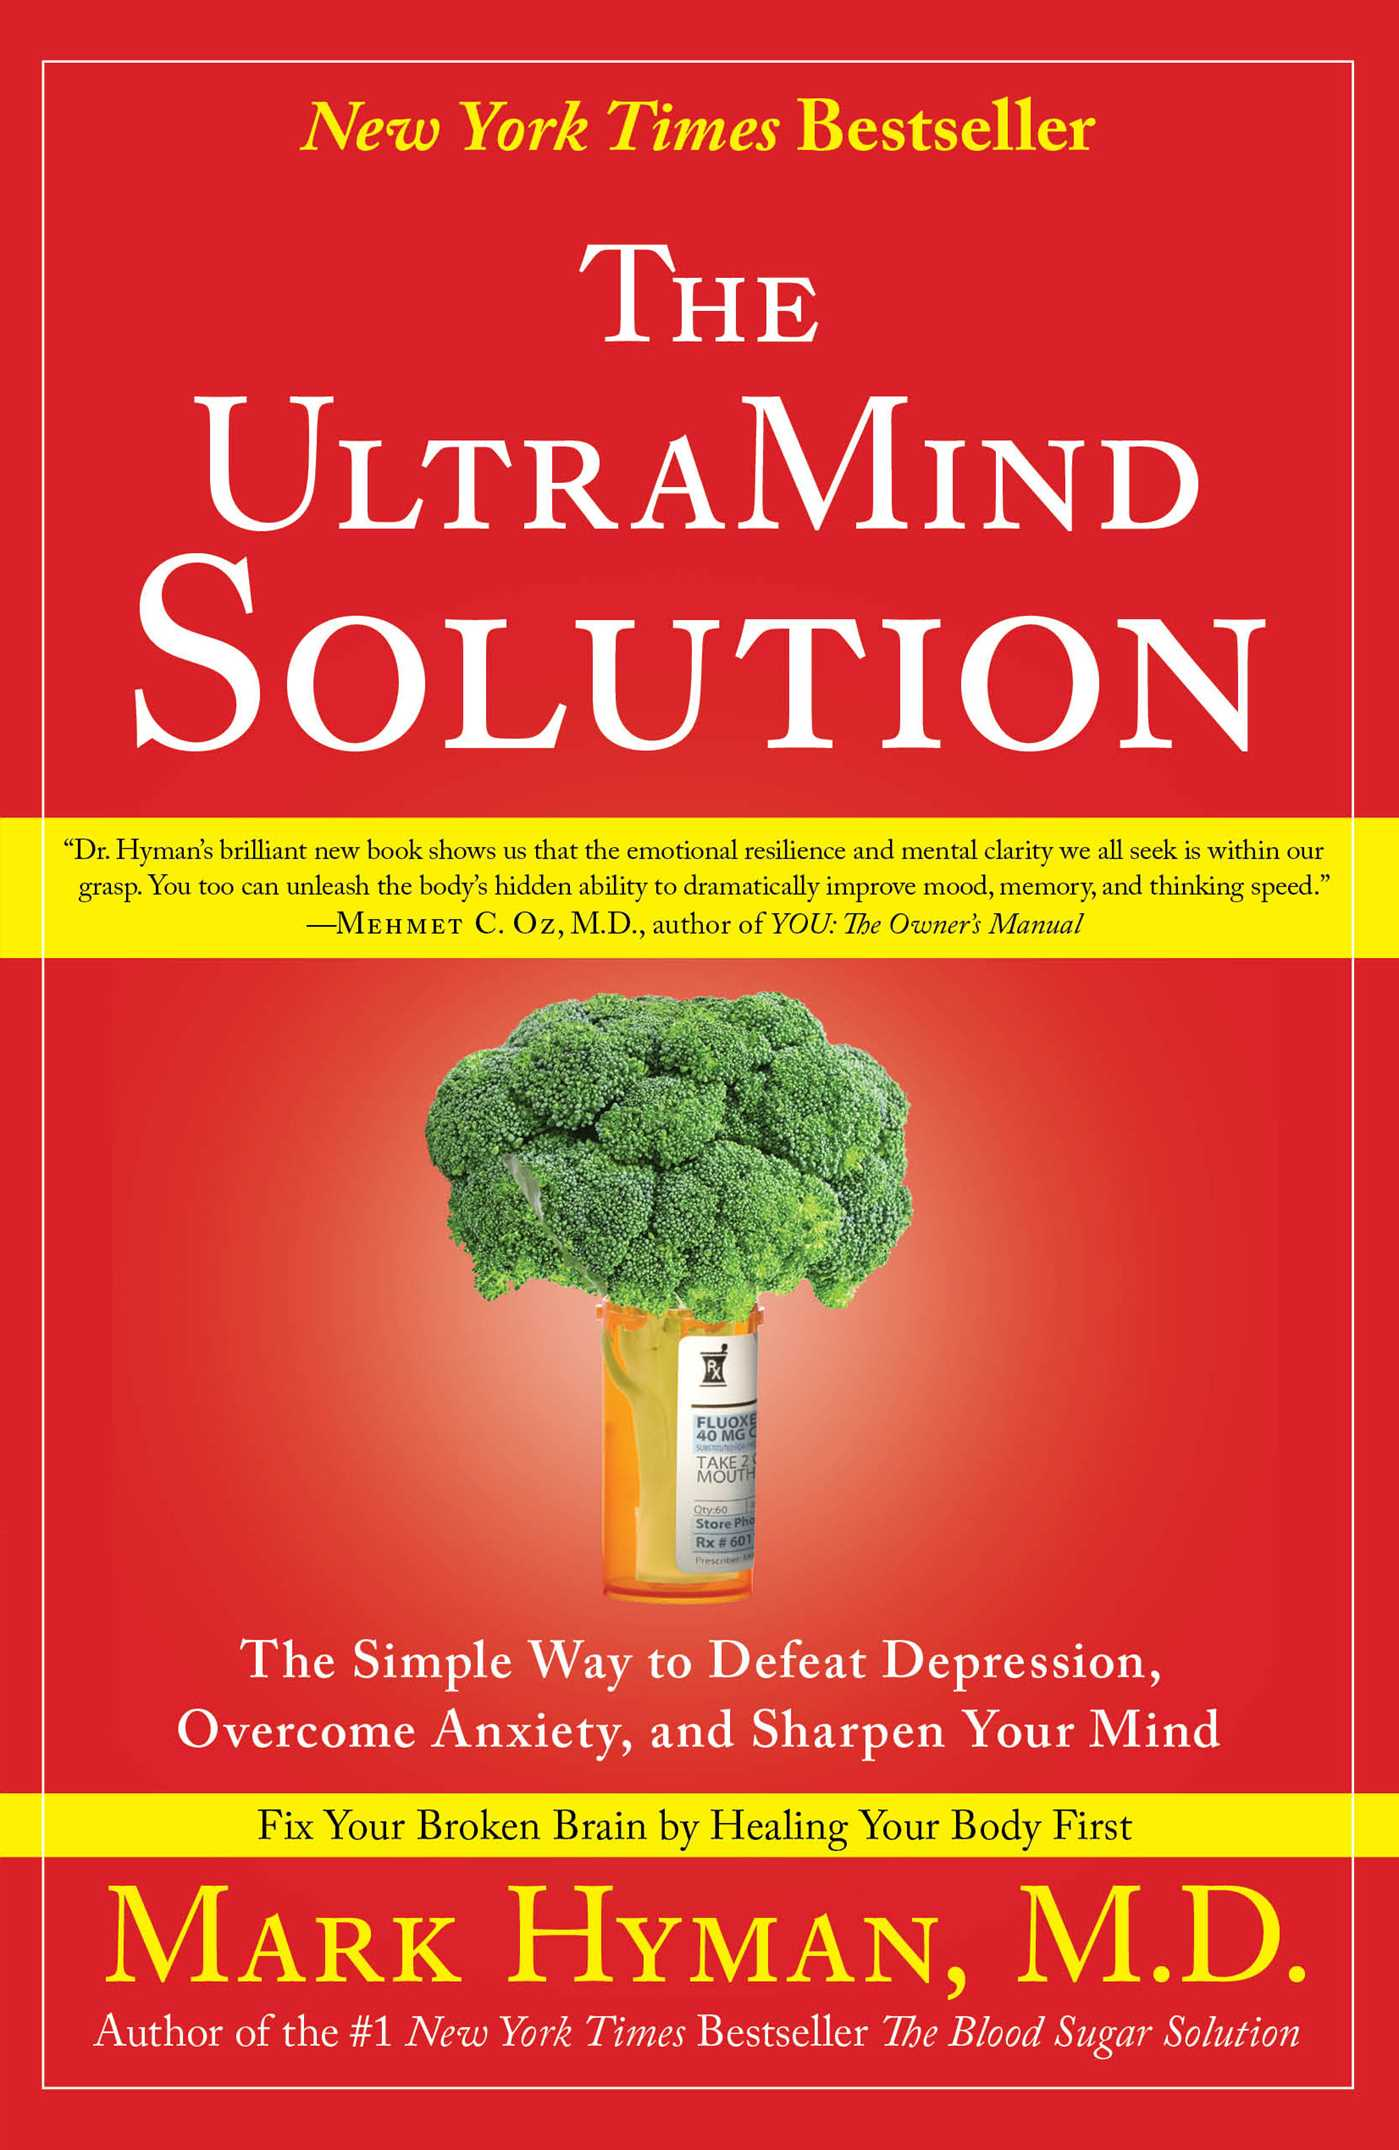 The ultramind solution 9781416566052 hr